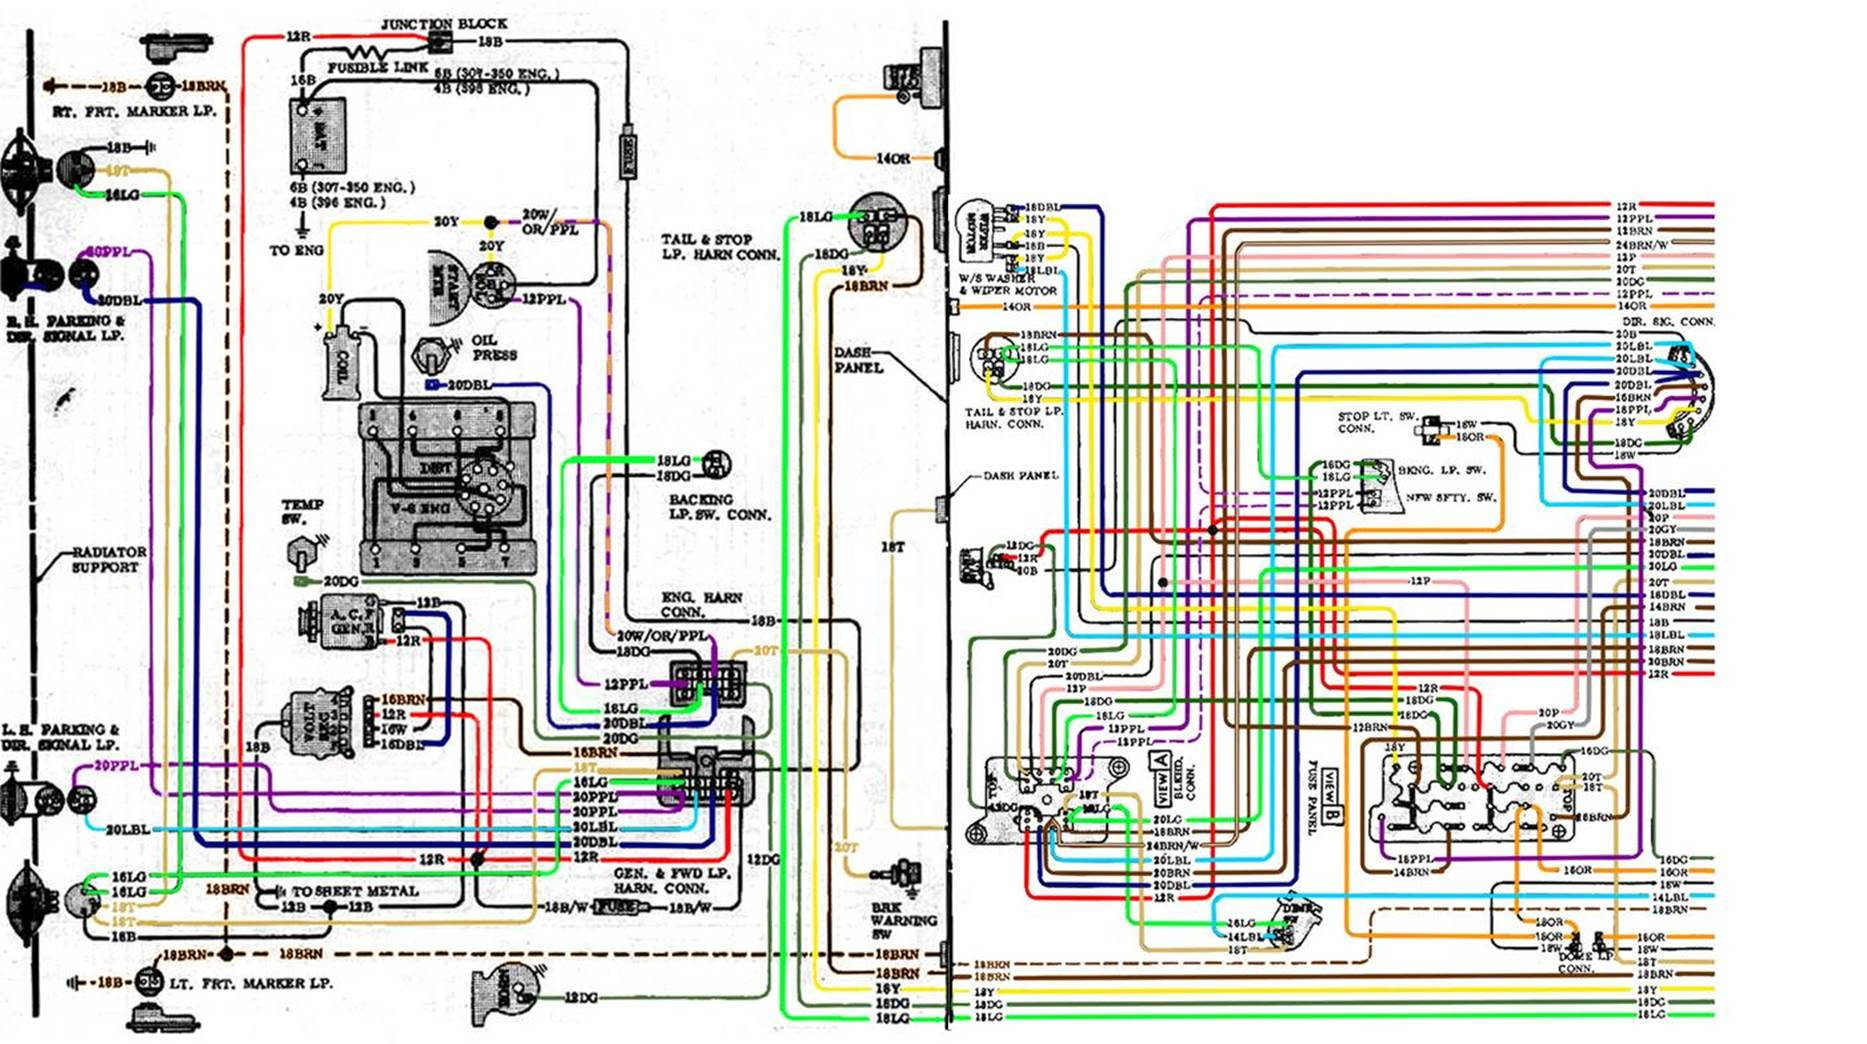 image002 72 c10 wiring diagram chevy truck wiring diagram \u2022 wiring diagrams chevy truck wiring harness diagram at mr168.co